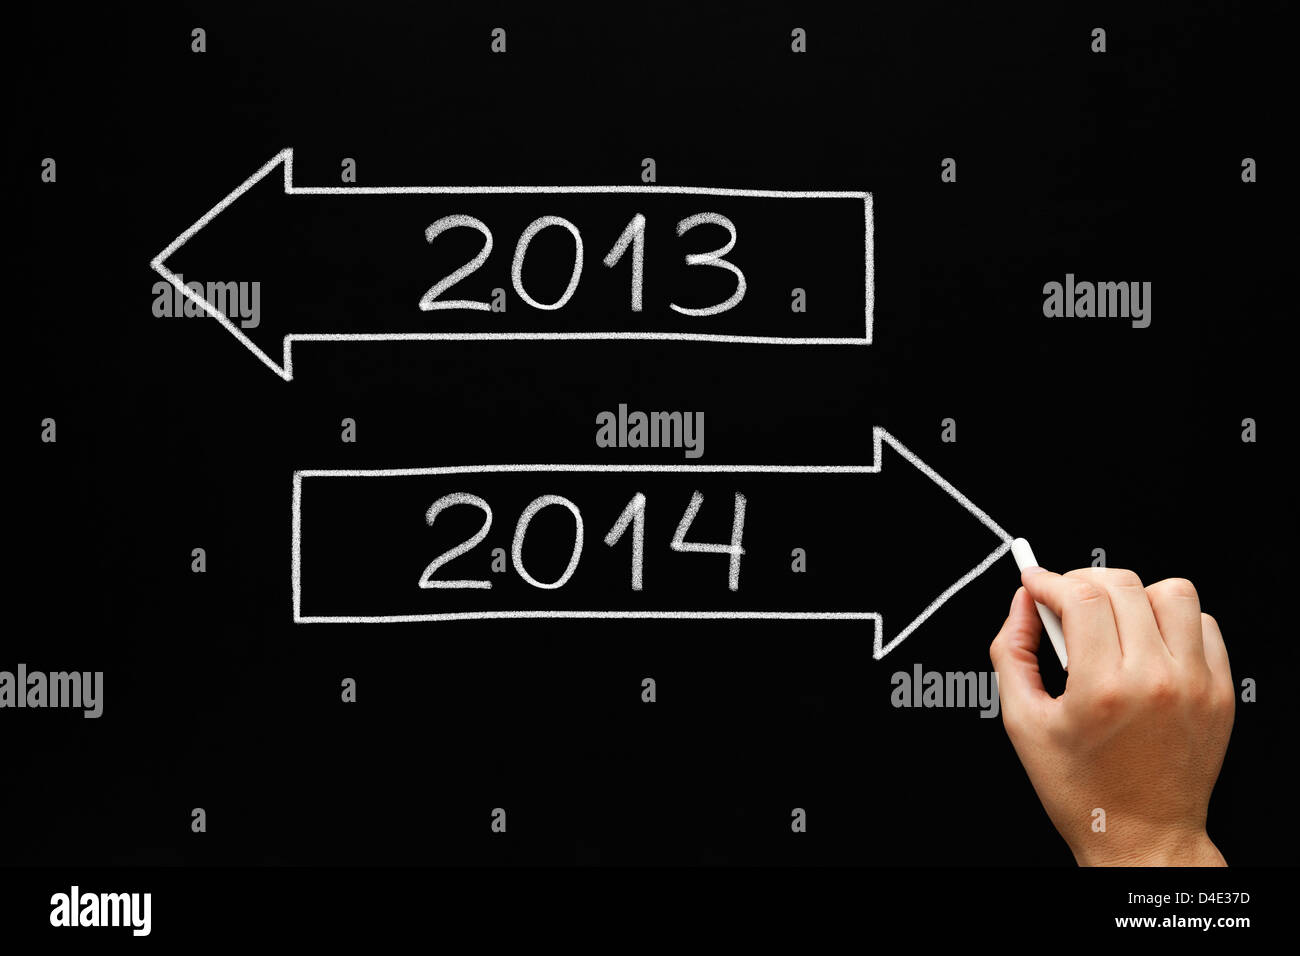 Hand drawing New year concept with white chalk on a blackboard. Going ahead to year 2014 and leaving the year 2013 - Stock Image